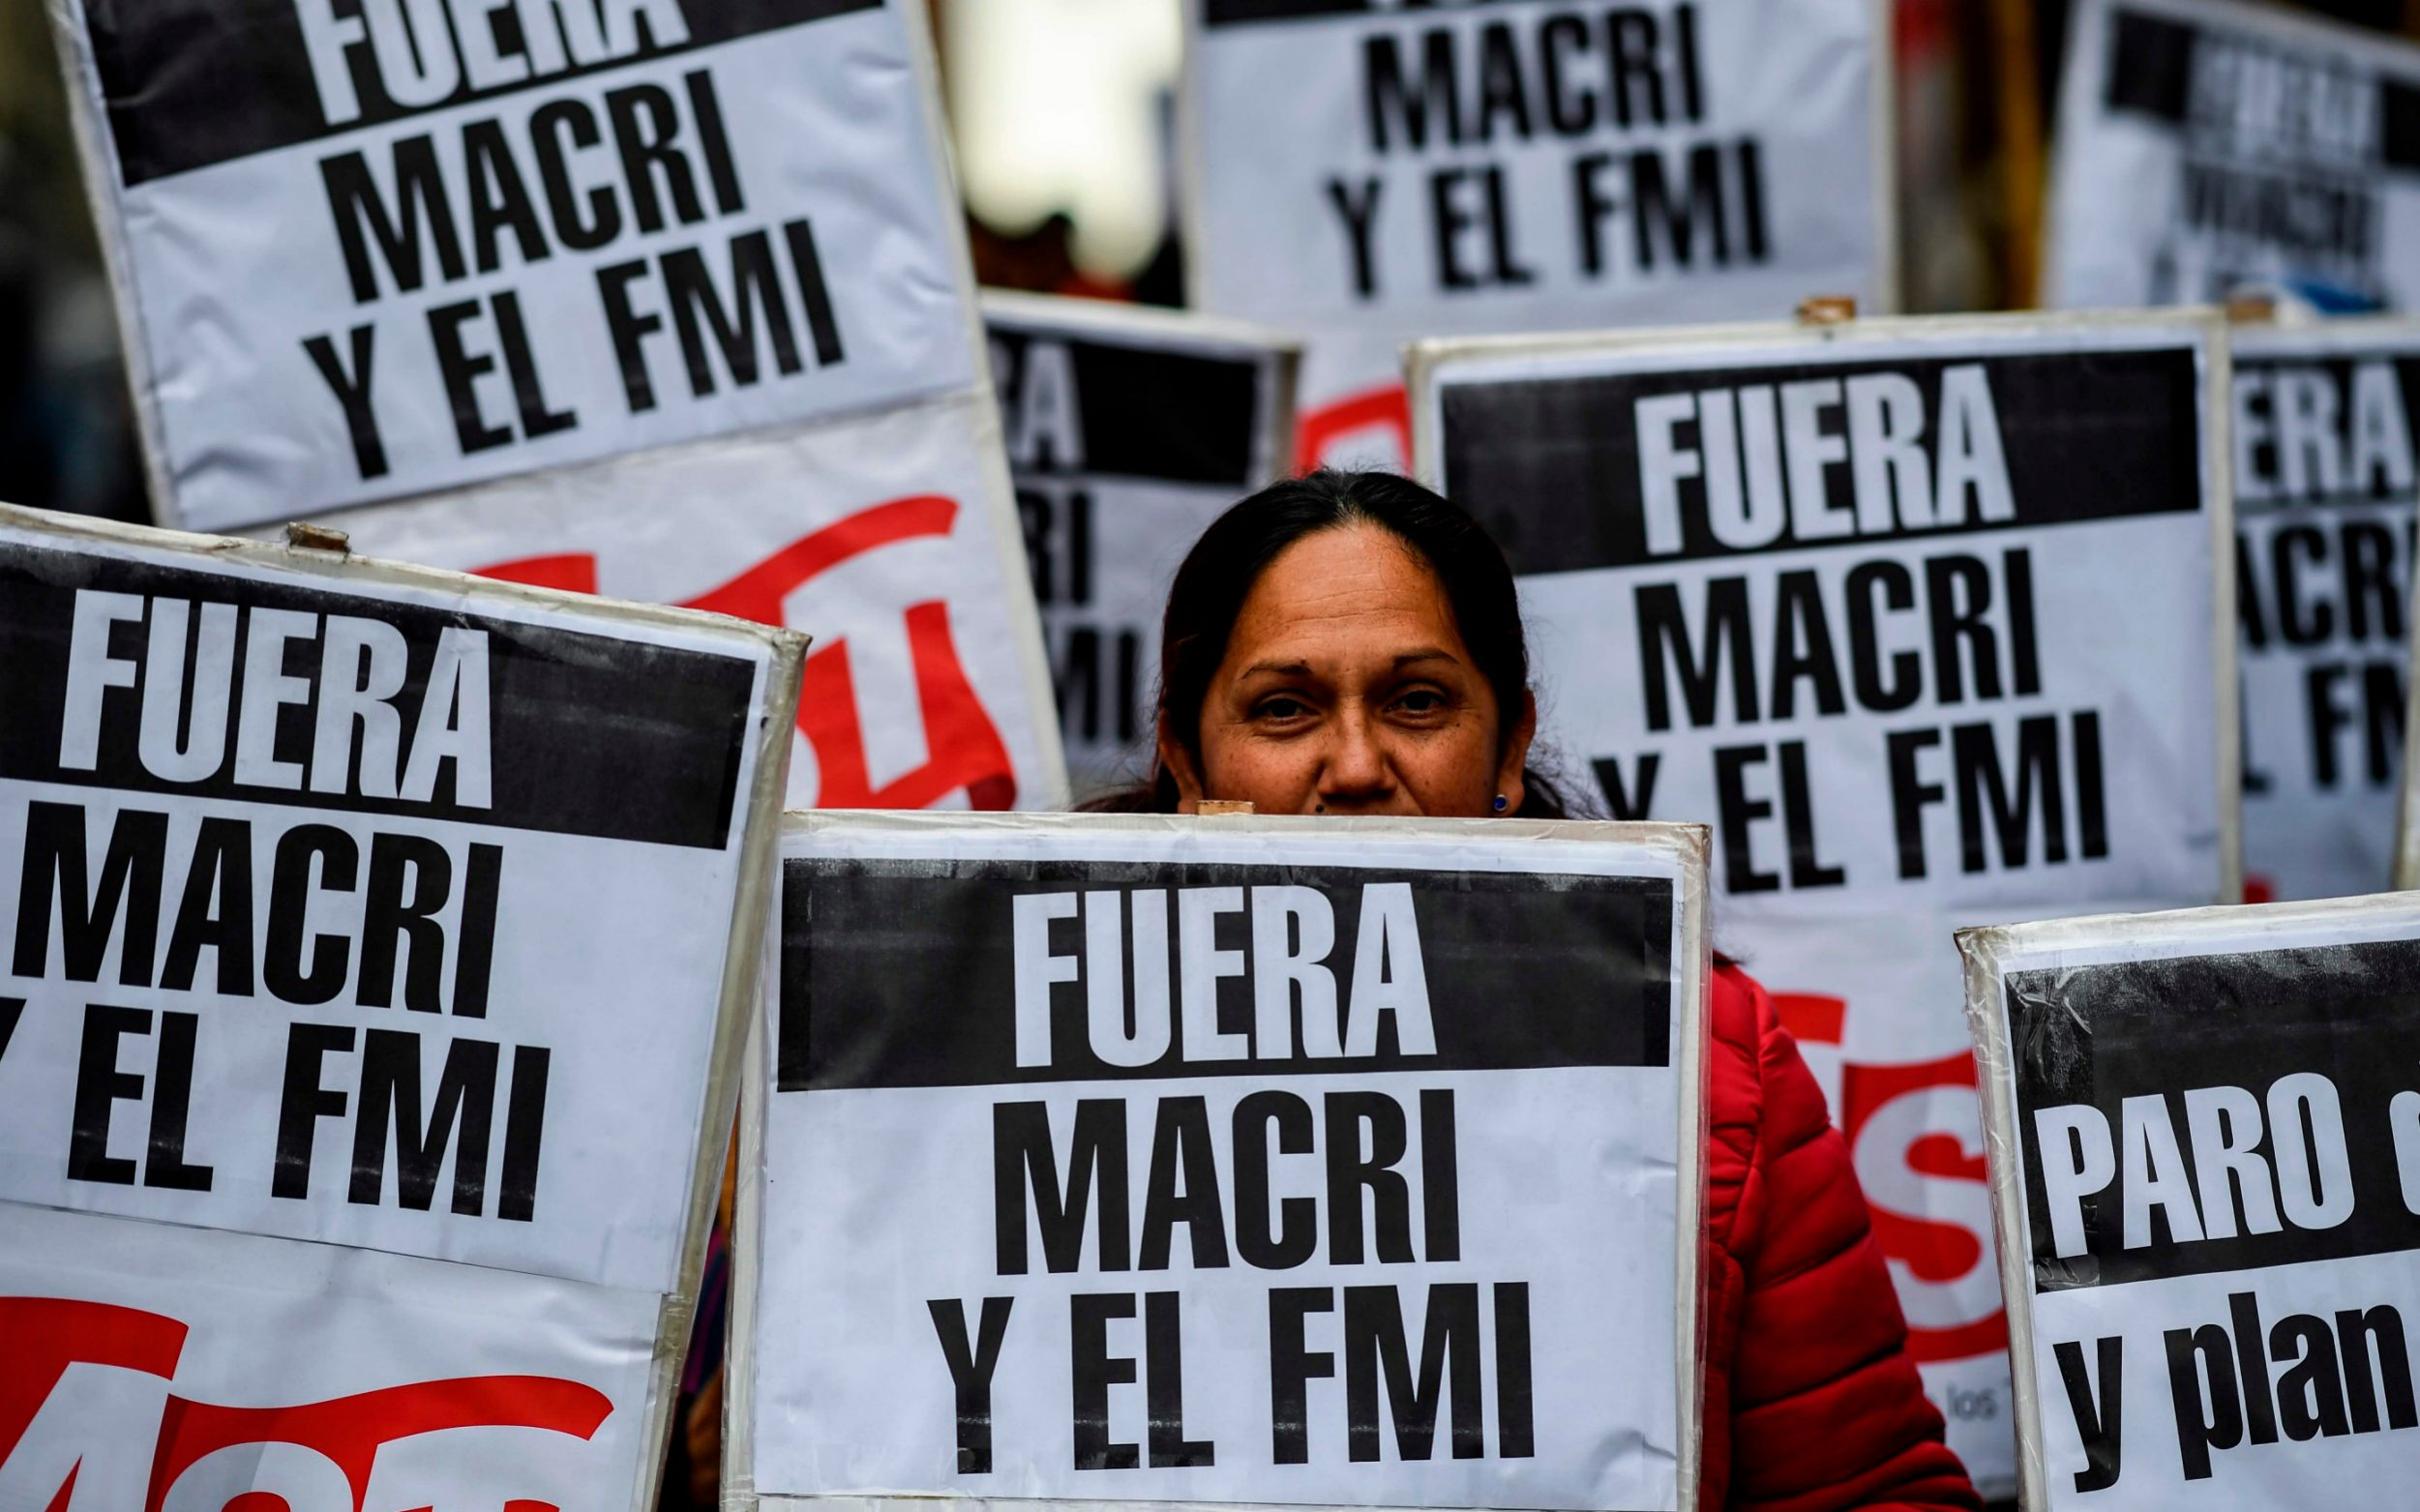 Argentina to welcome back Peronists after four years of failed economic reform